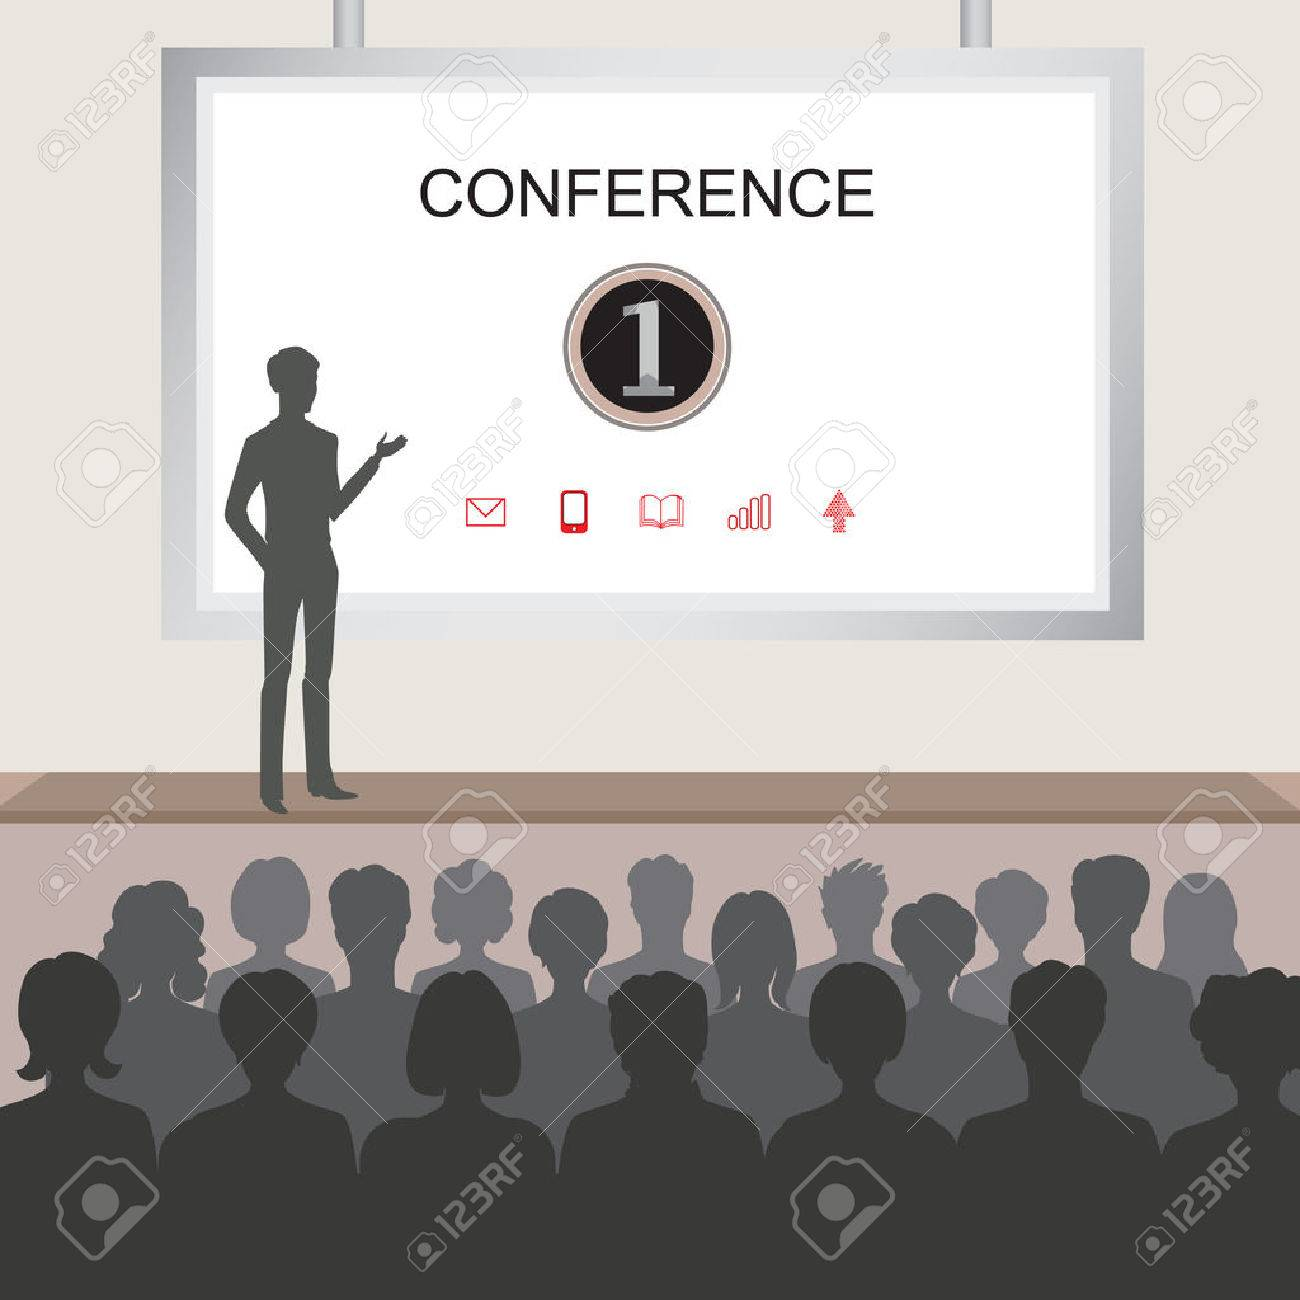 Conference room illustration. People at the conference hall. Business meeting template Stock Vector - 44974413